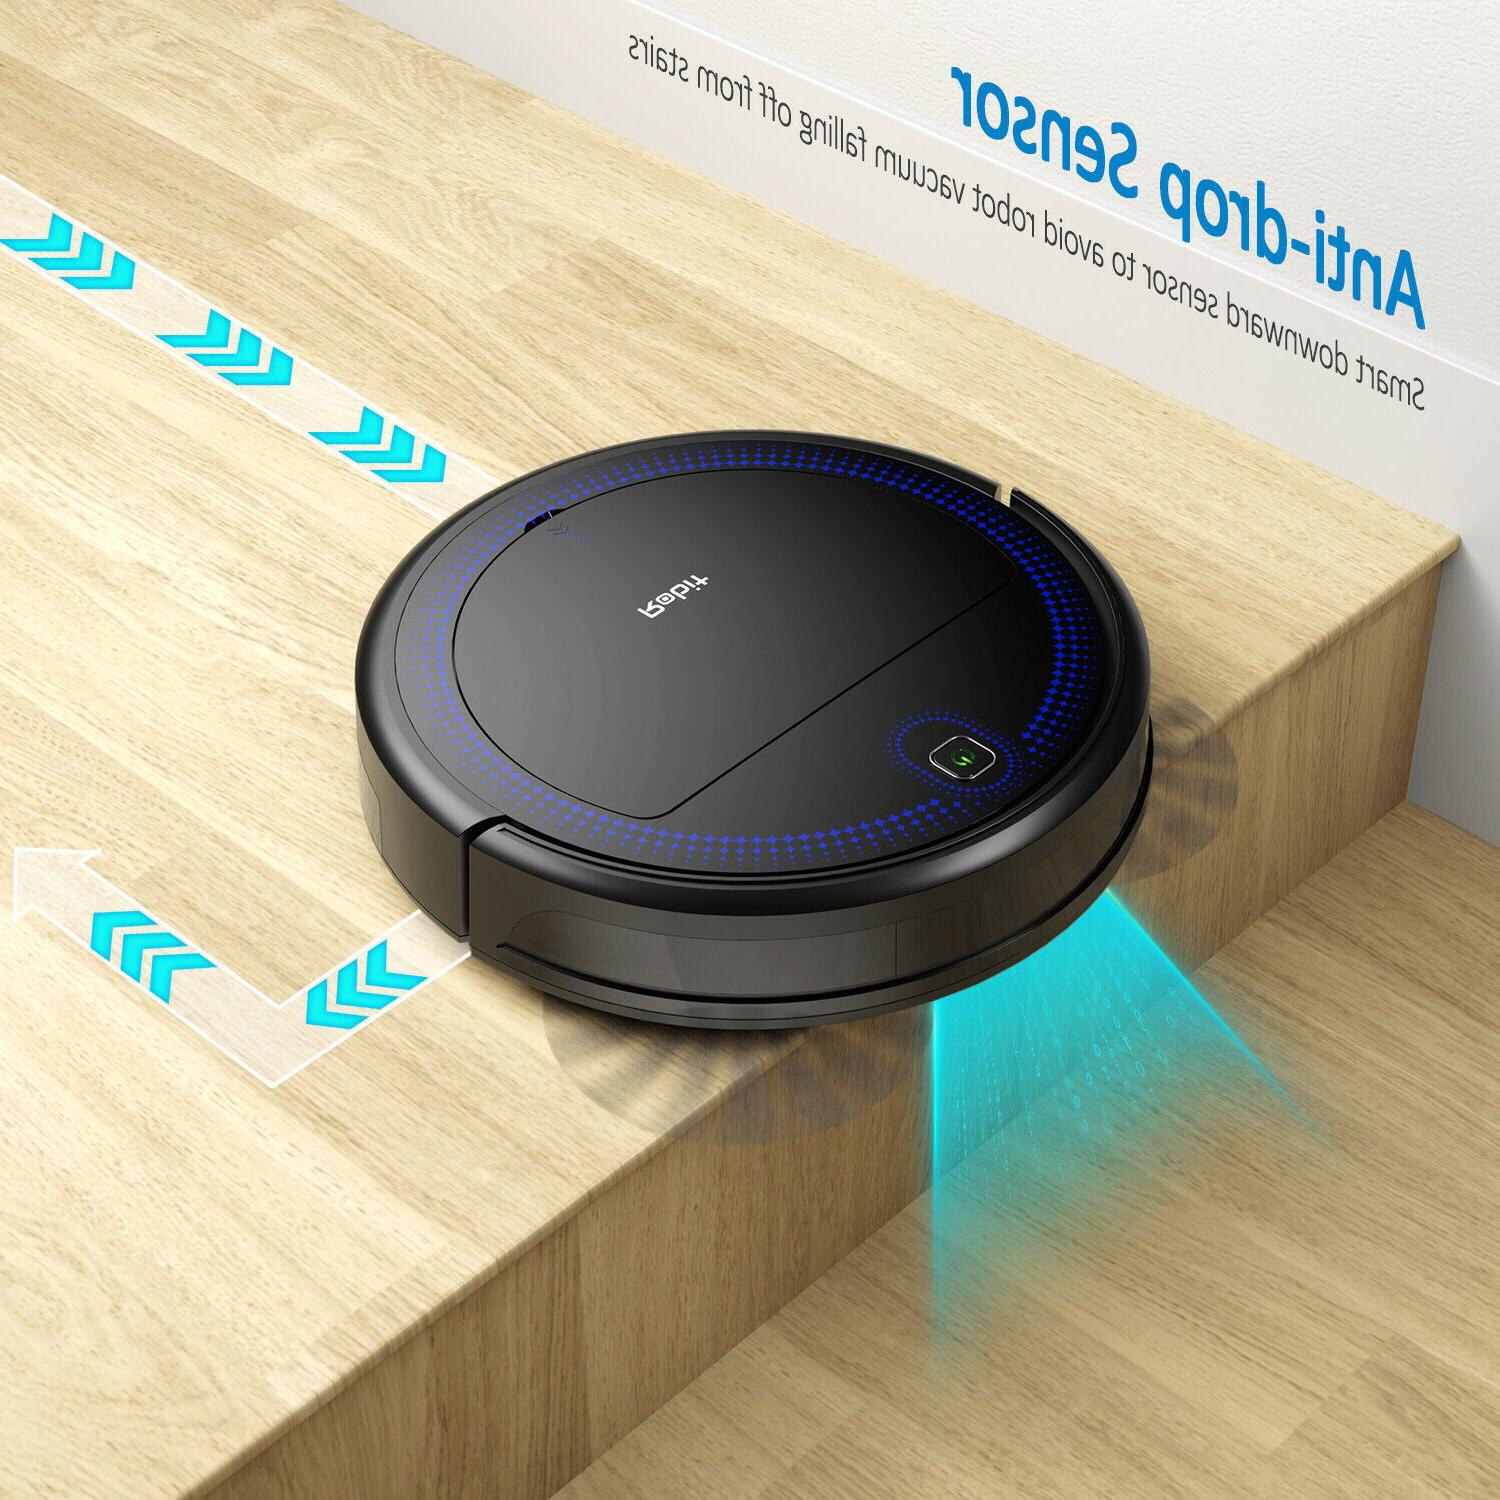 Housmile Robot Vacuum Cleaner Remote Controller Automatic 2K